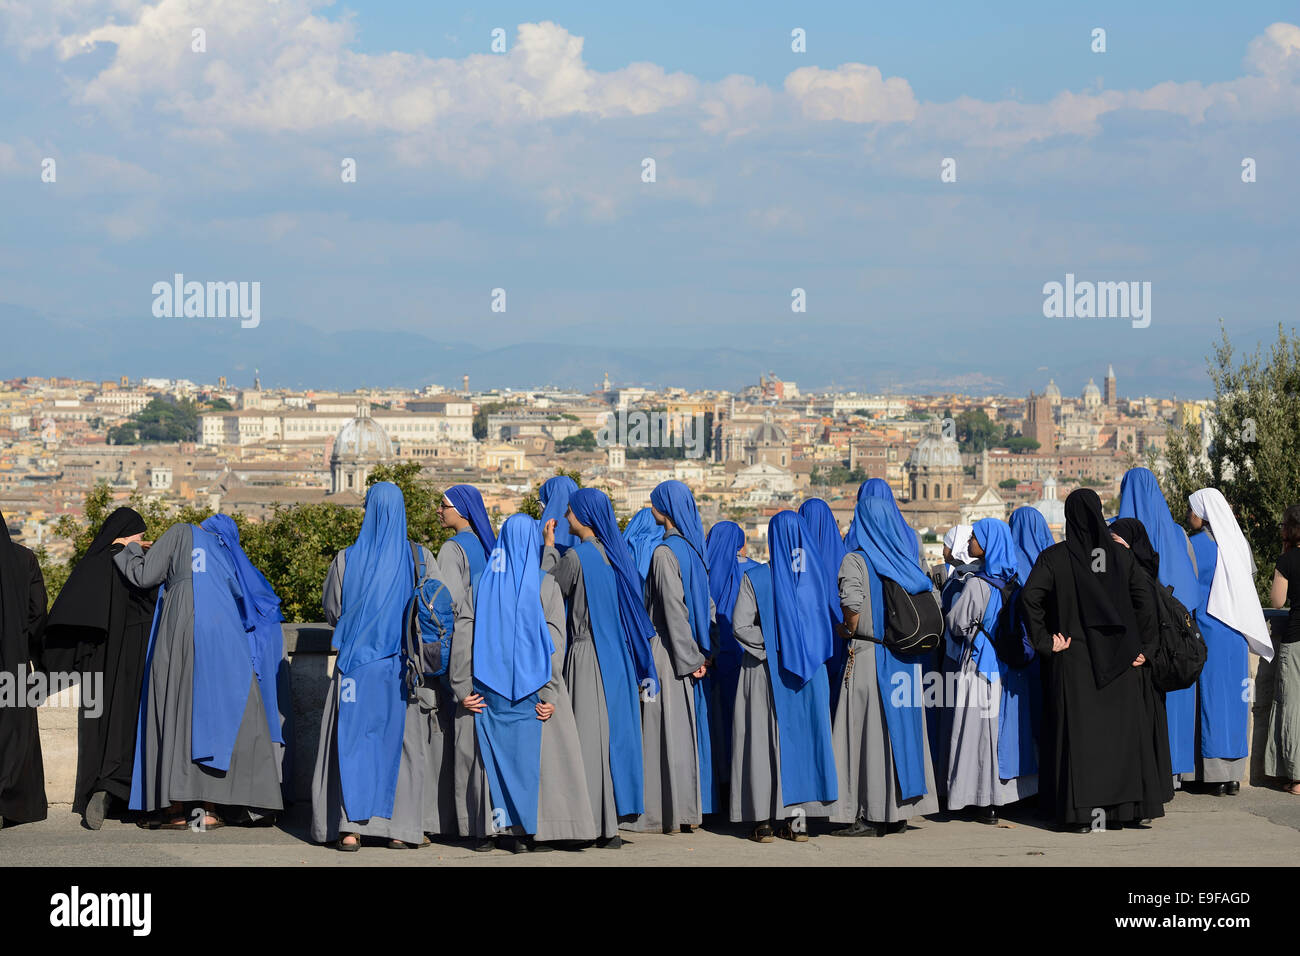 Rome. Italy. A group of nuns take in the view of the city from Piazza Garibaldi on the Gianicolo hill. - Stock Image